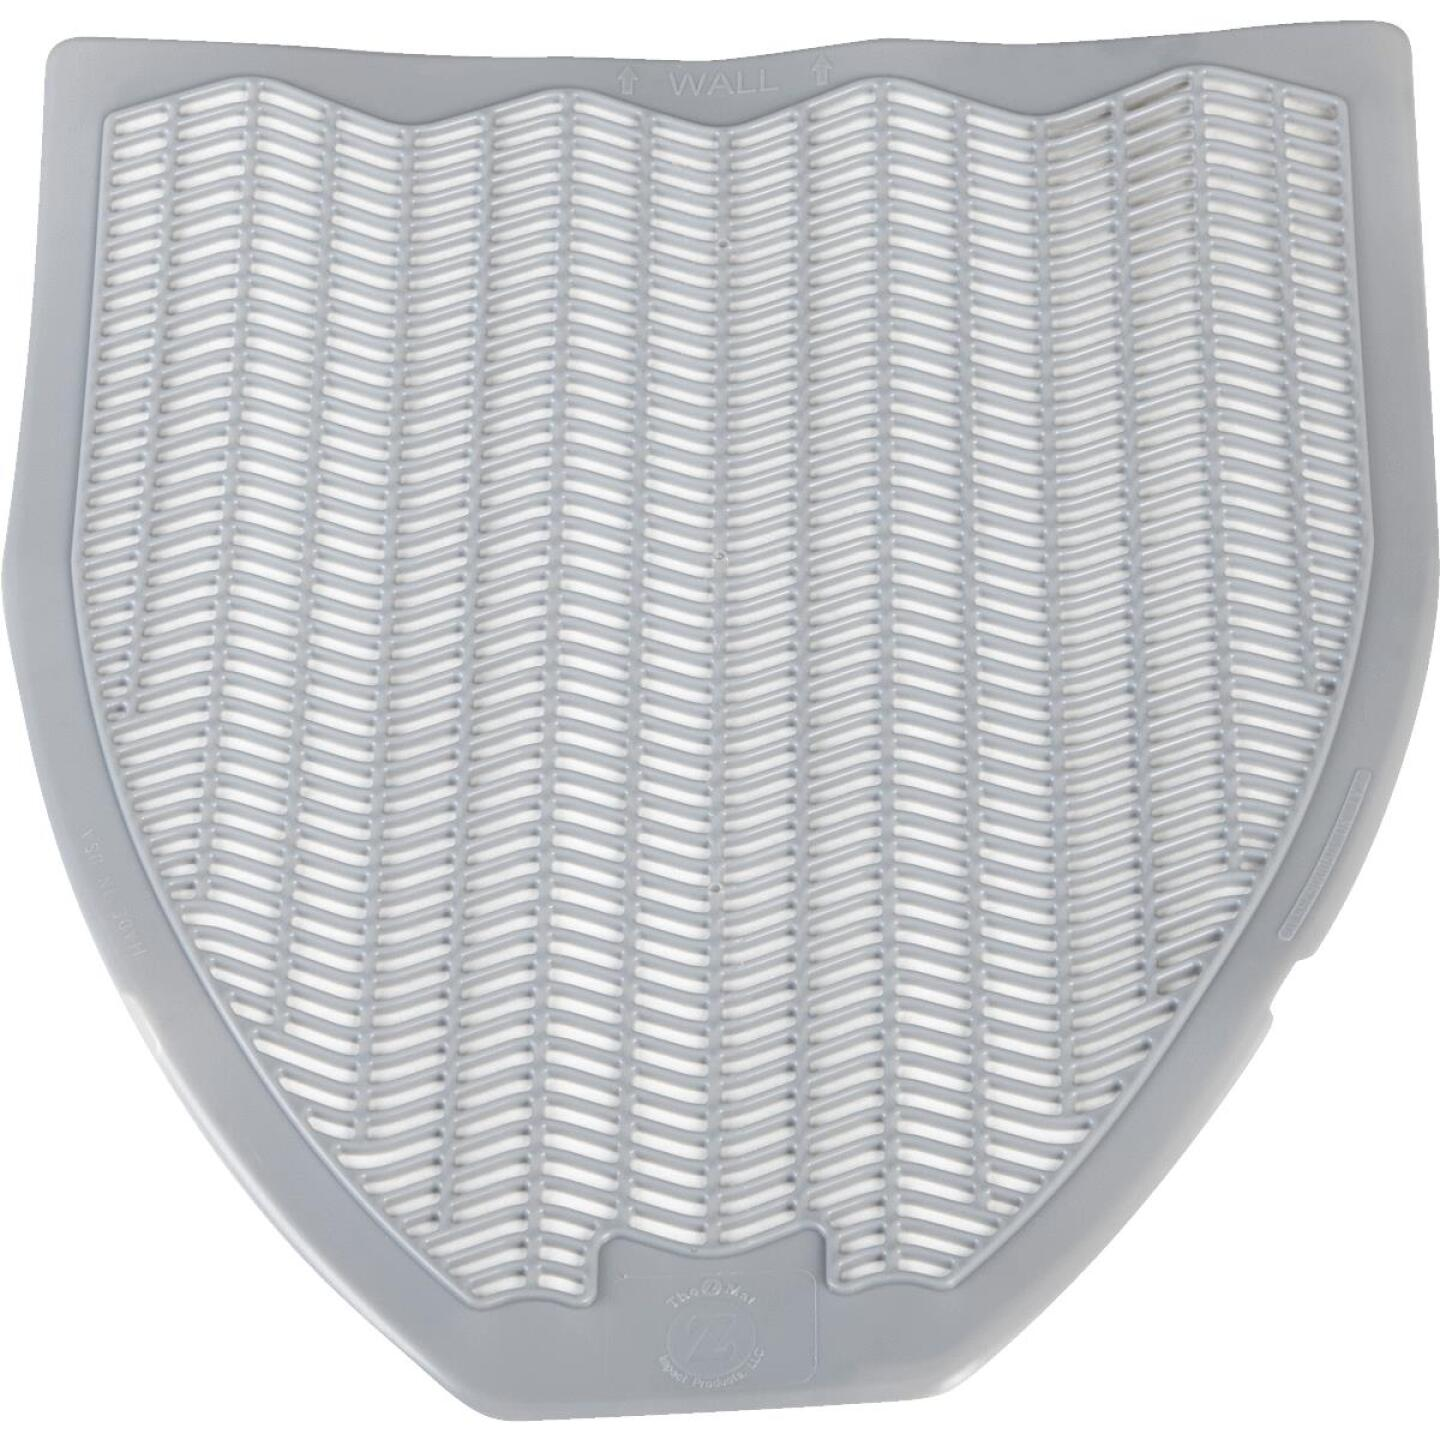 Impact Orchard Zing Scent 6-Week Protection Urinal Mat Image 1